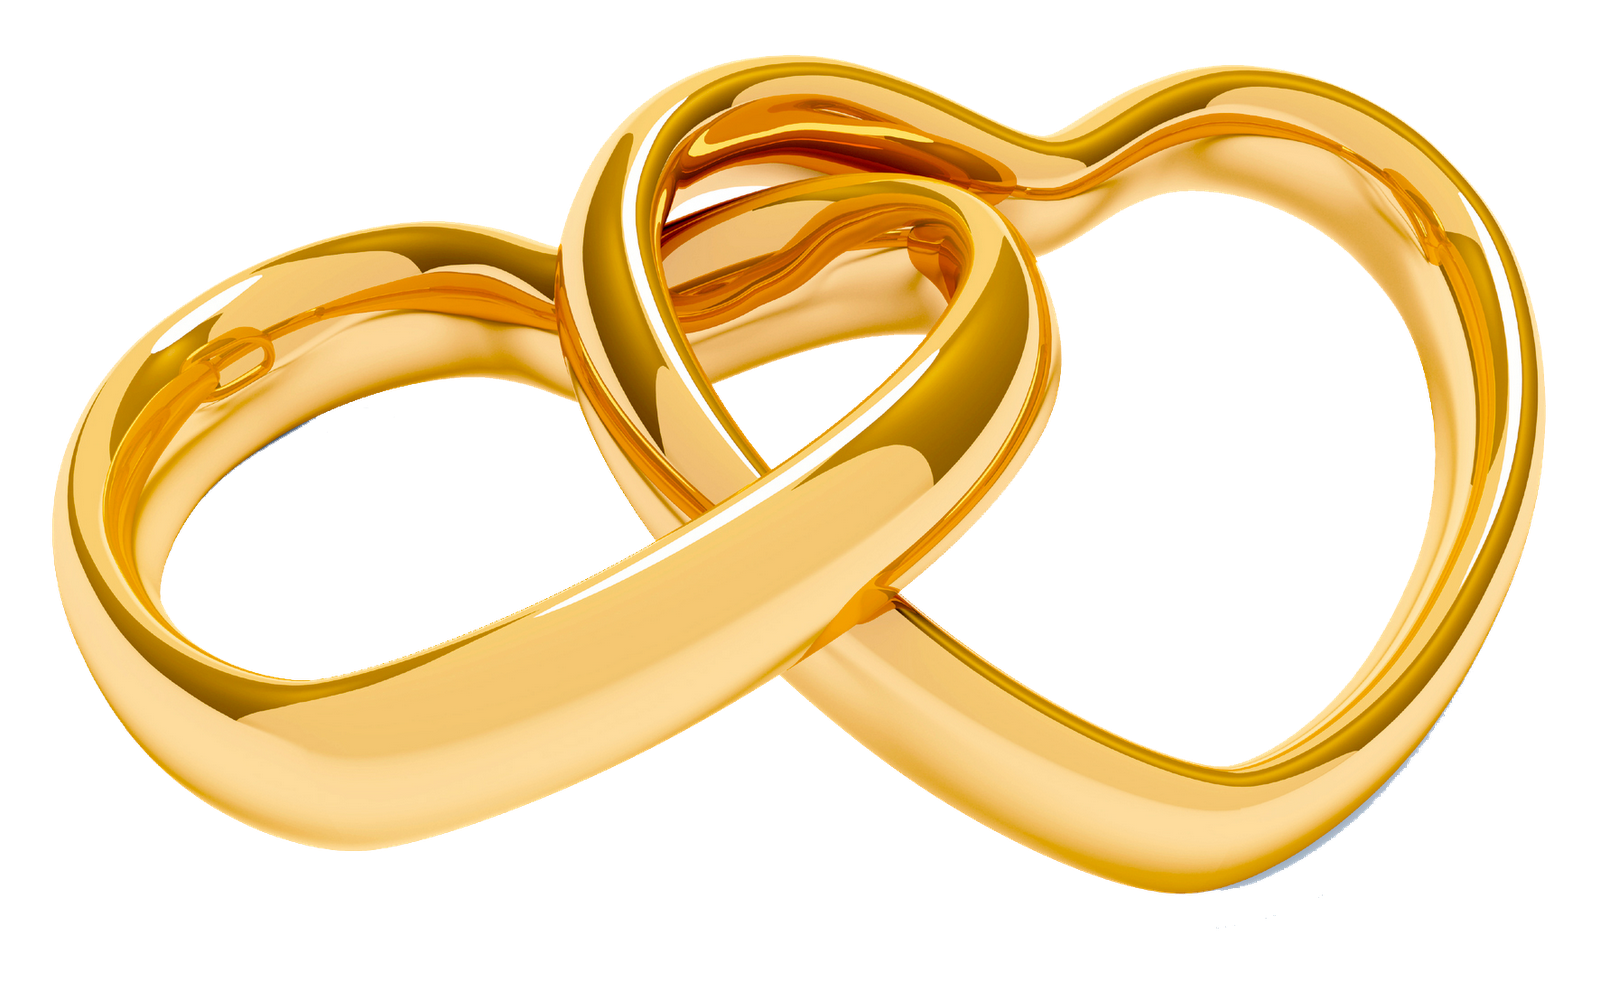 Wedding rings heart clipart clip library download Anillos de Boda - Anillos de Bodas png | Anillos | Pinterest ... clip library download